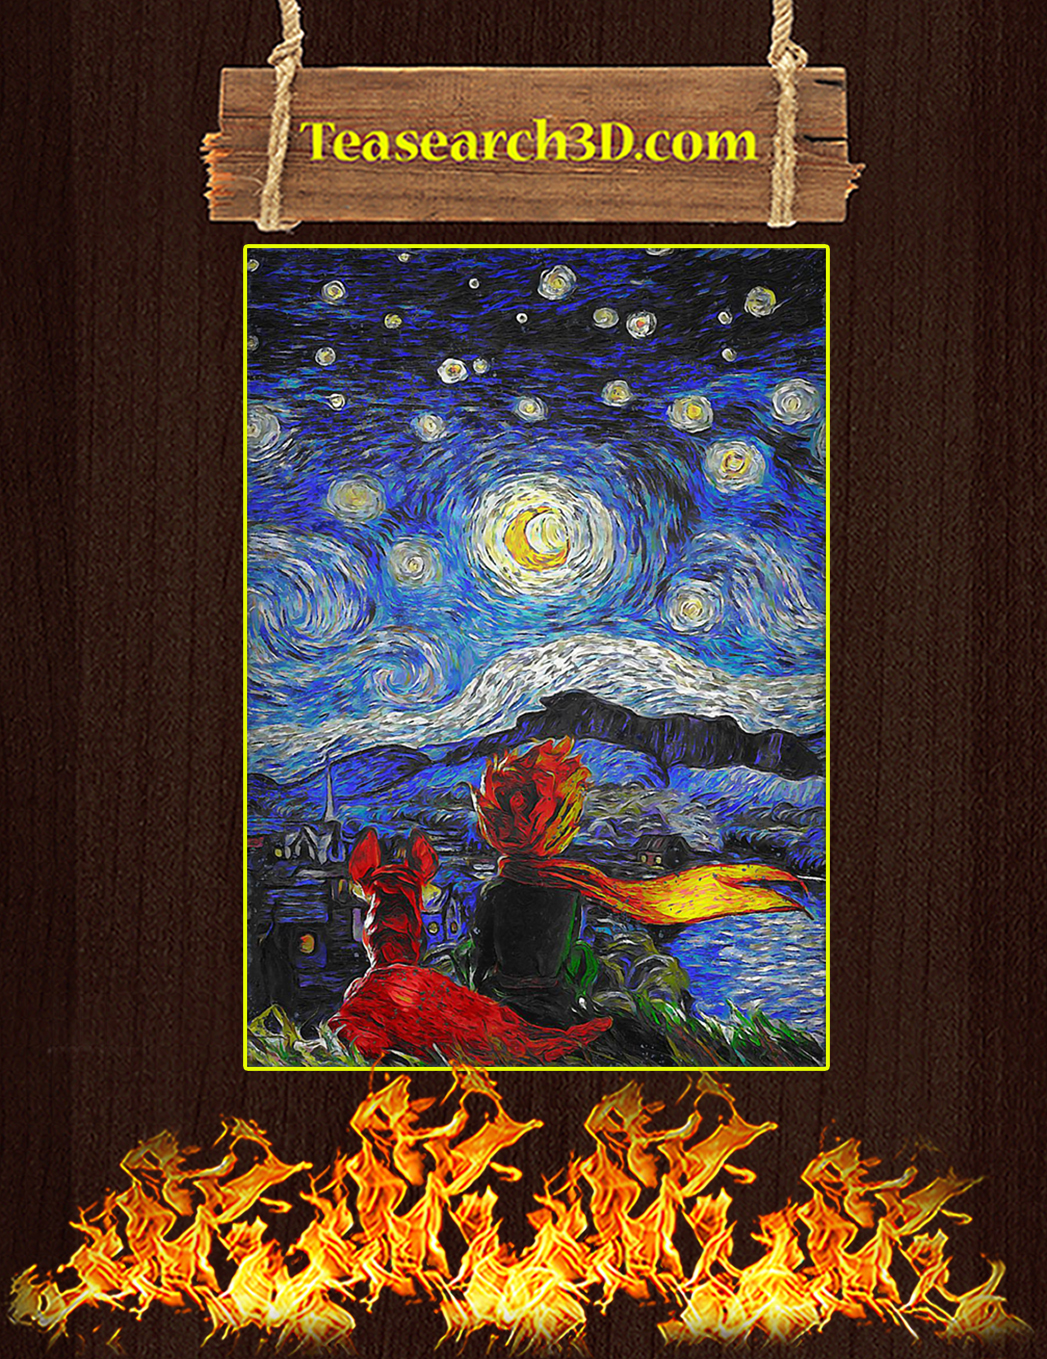 Little prince and fox starry night van gogh poster A1